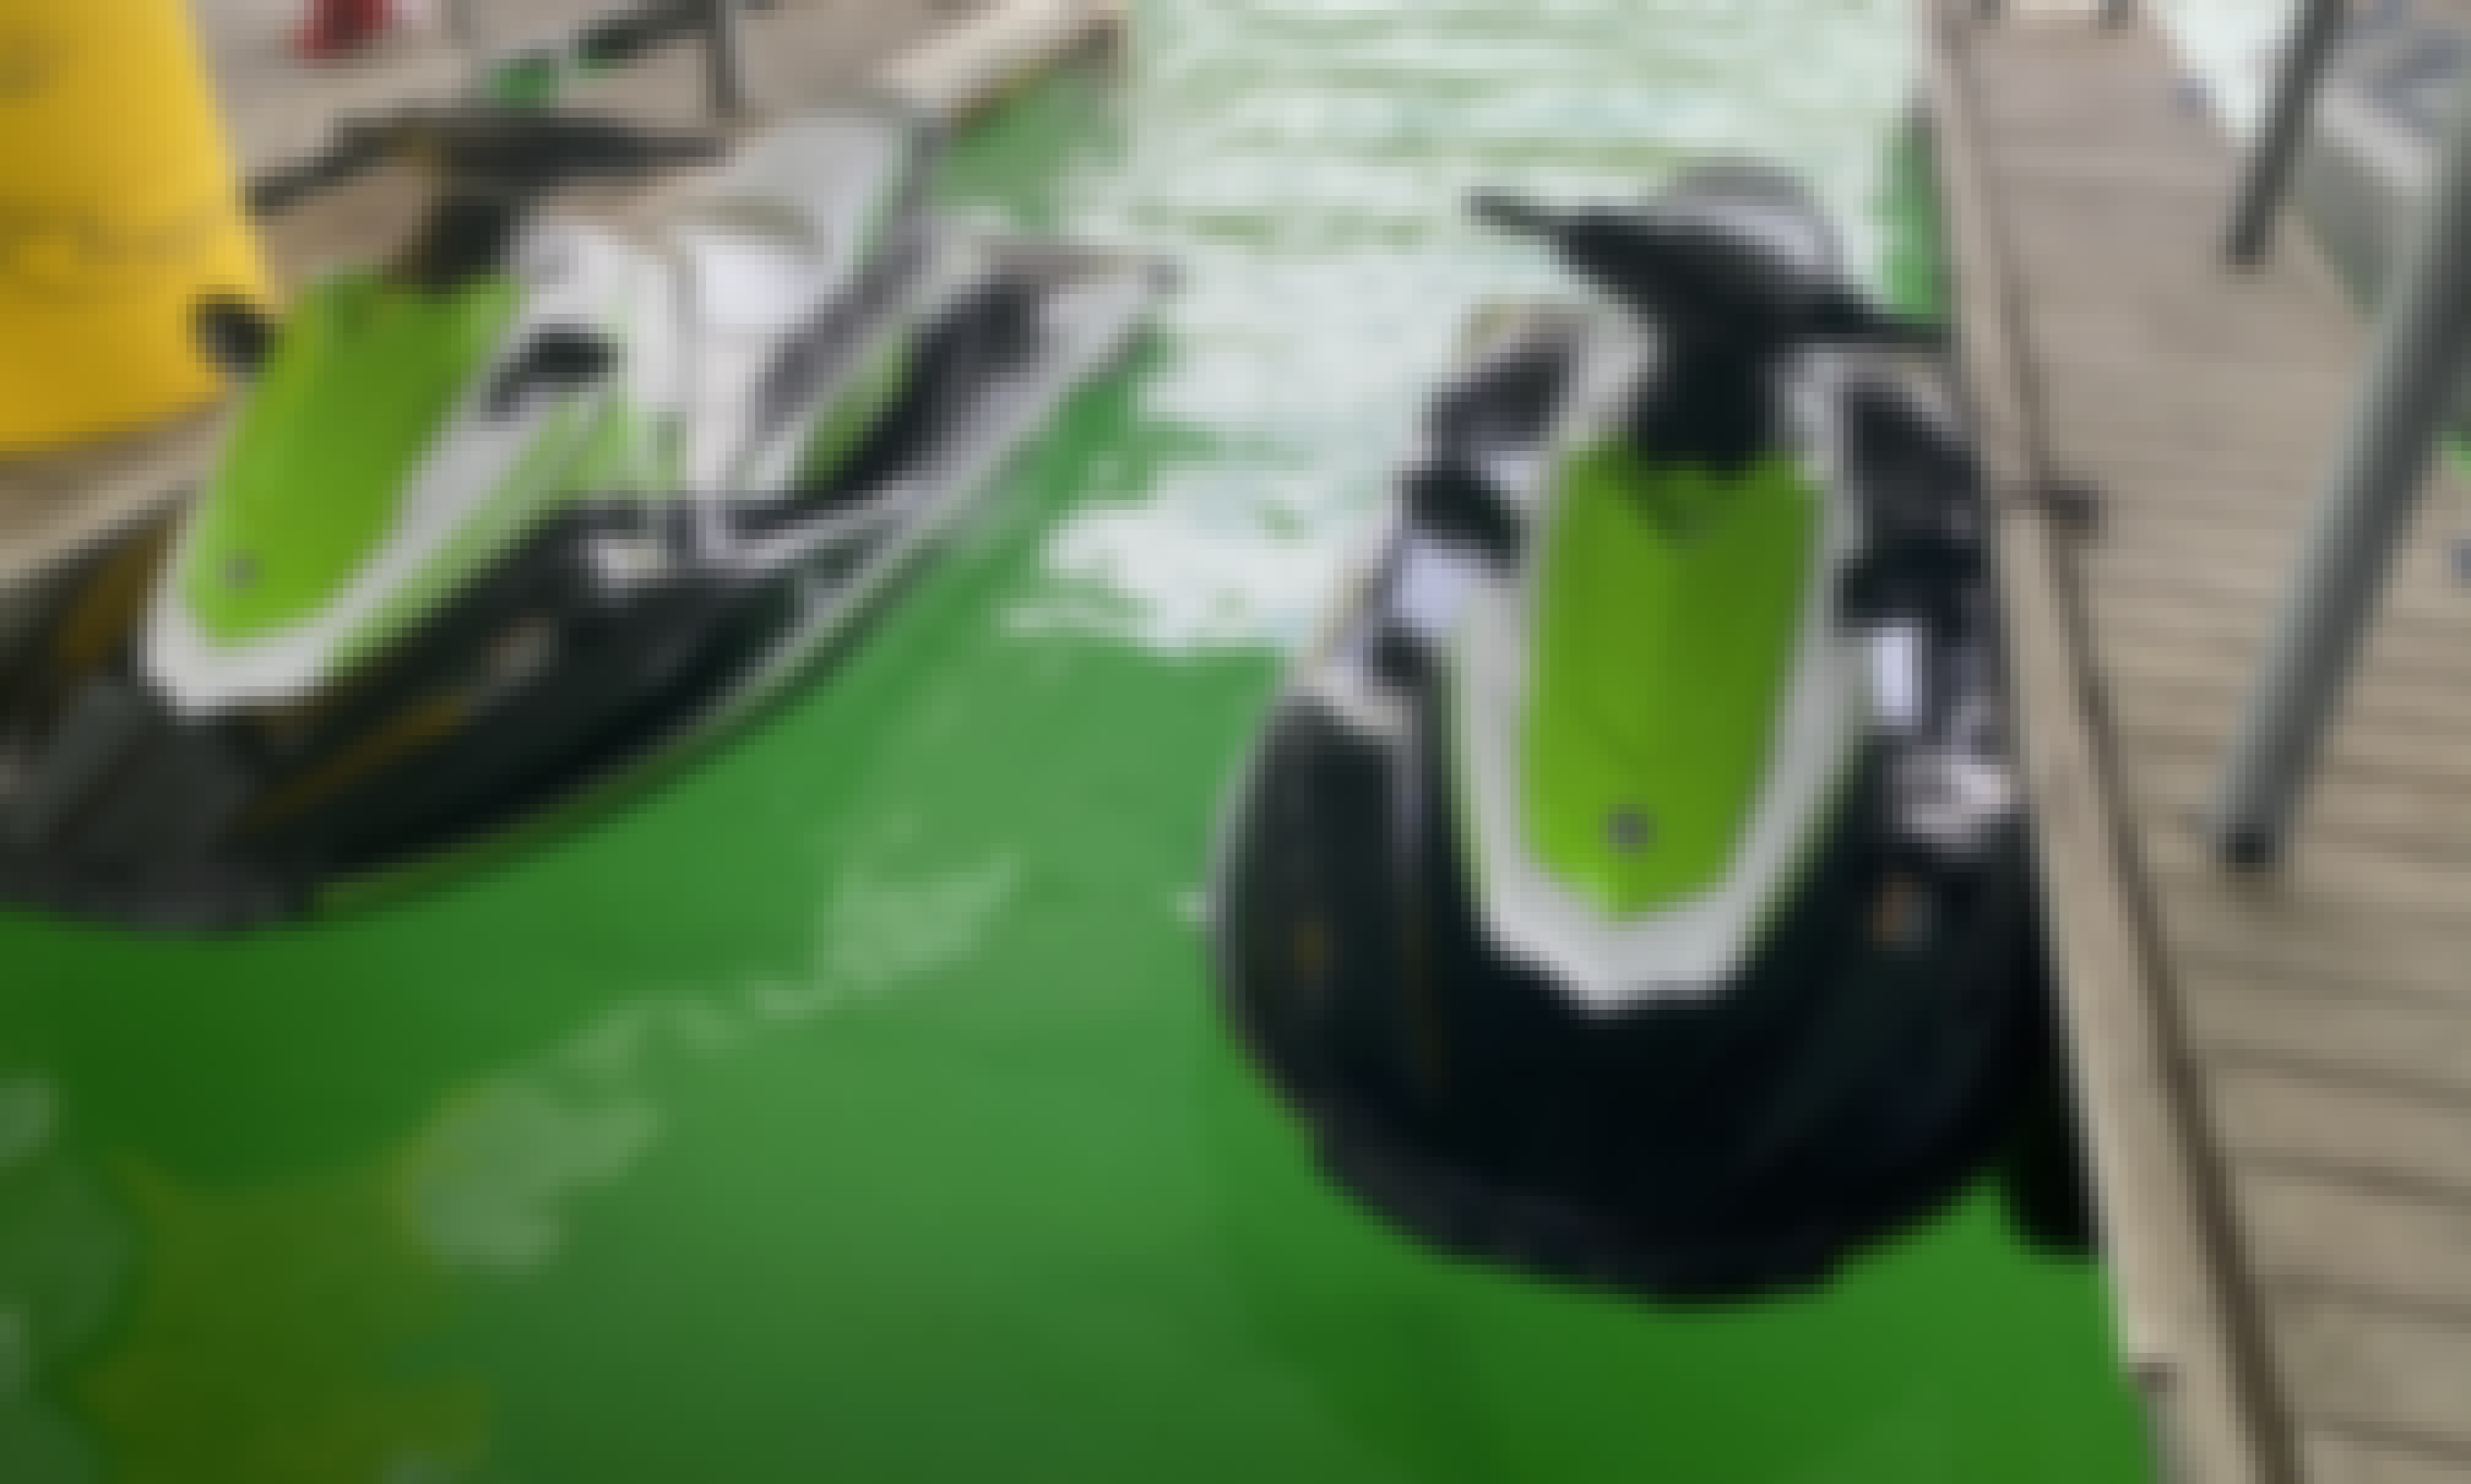 3-Seater Yamaha EX Jet Ski For Rent In Austin Texas.